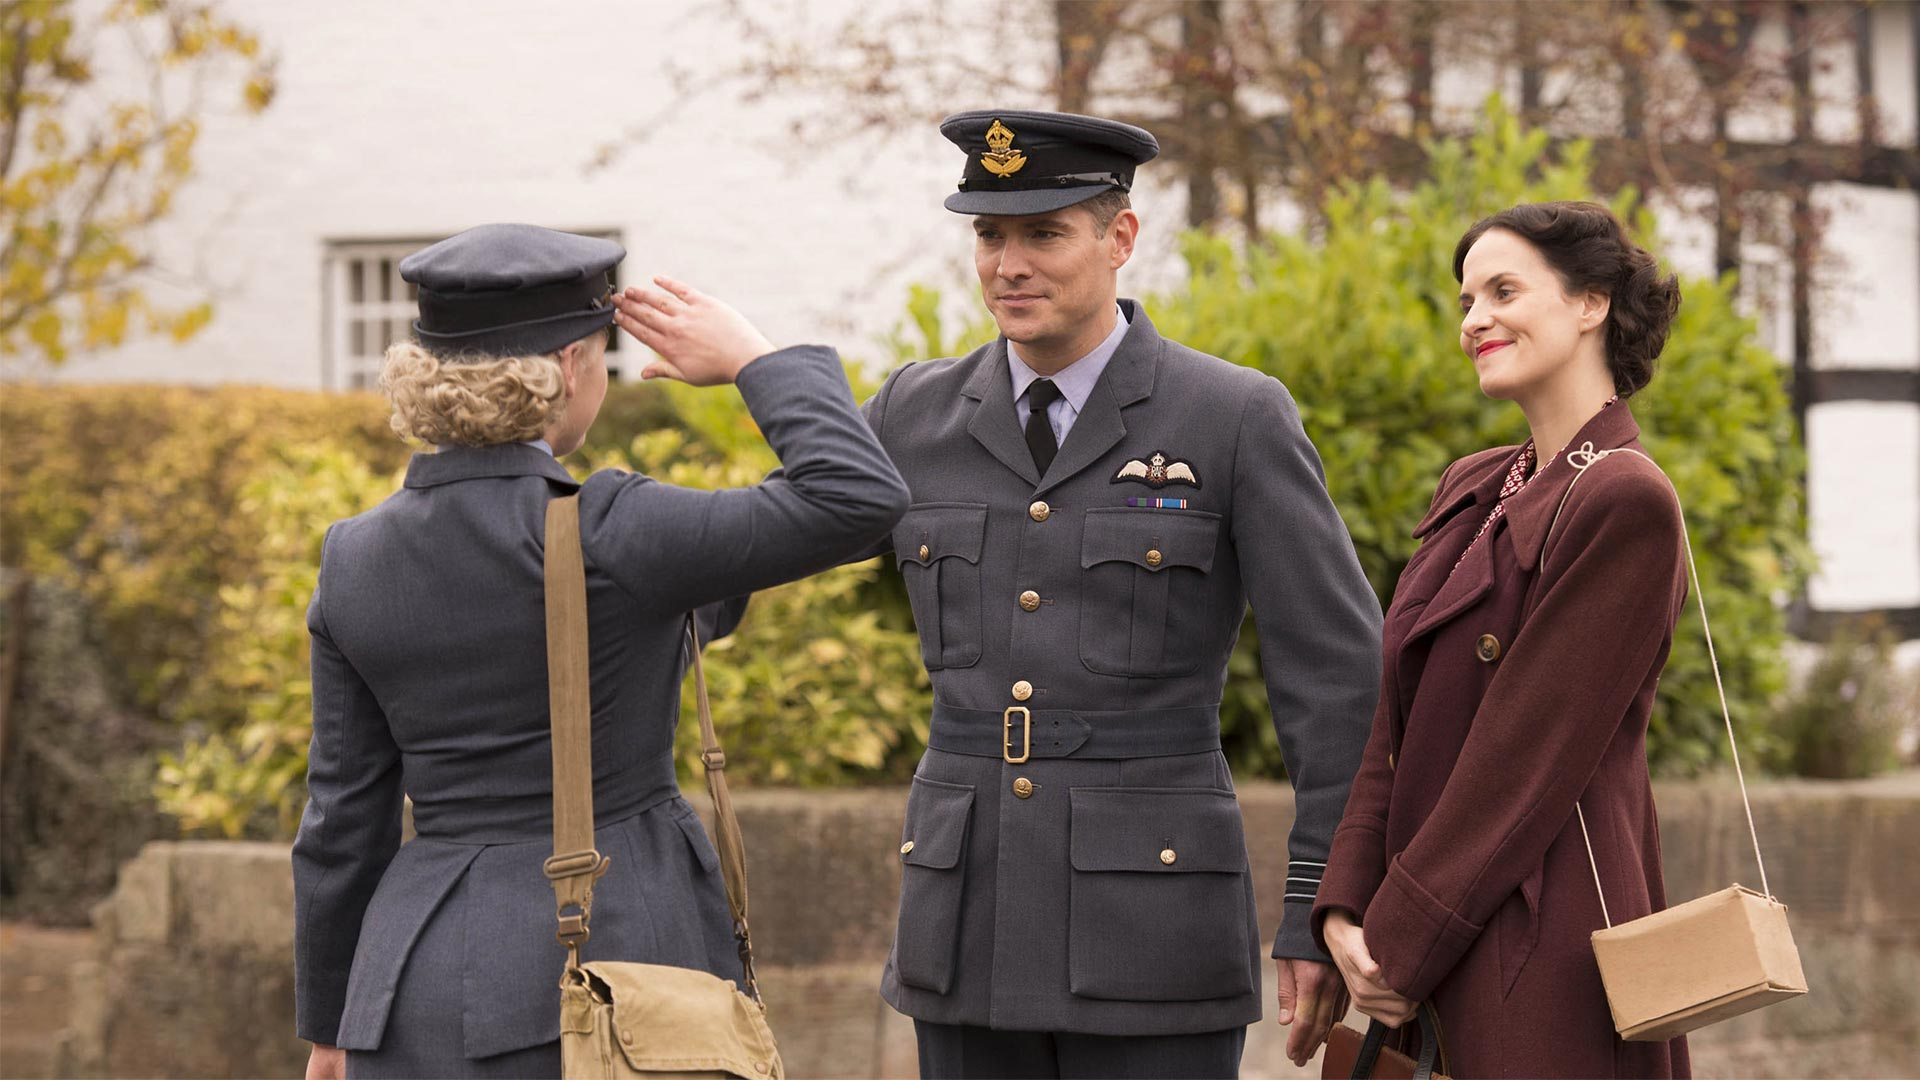 Shown from left to right: Mark Umbers as Nick Lucas and Leanne Best as Teresa Fenchurch